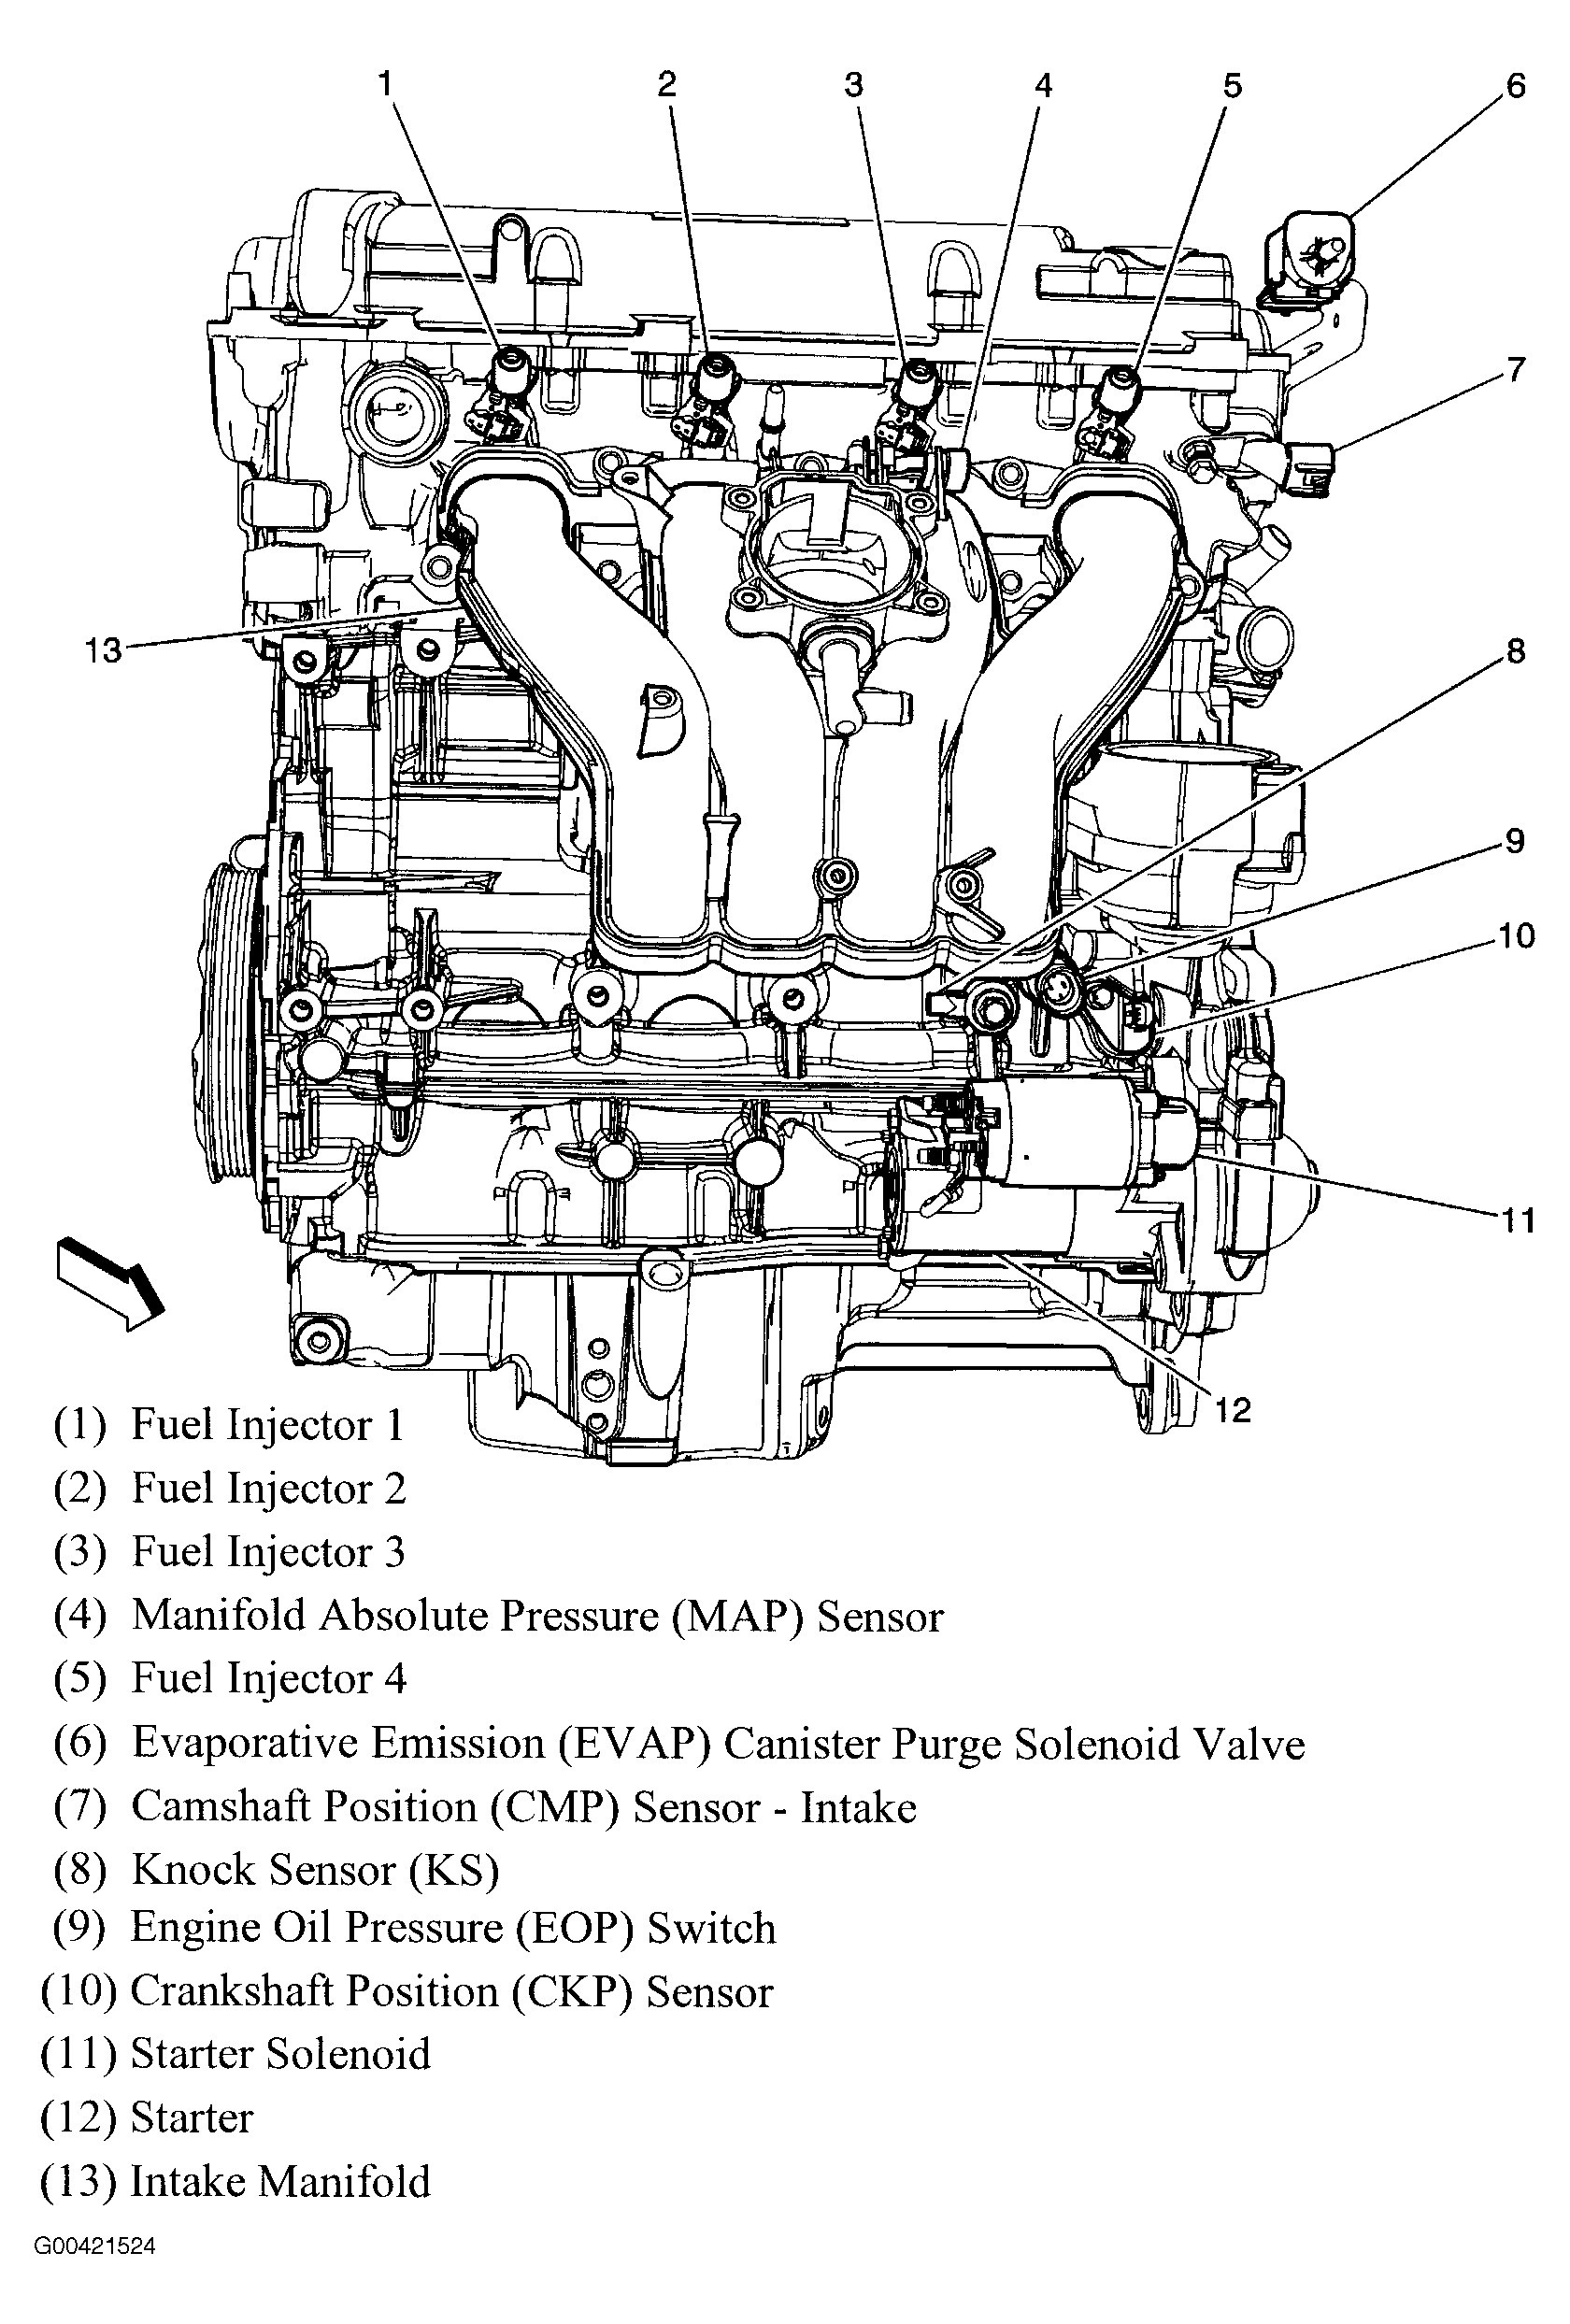 hight resolution of 2011 camaro engine diagram wiring diagram paper 2010 camaro v6 engine diagram 2010 camaro engine diagram